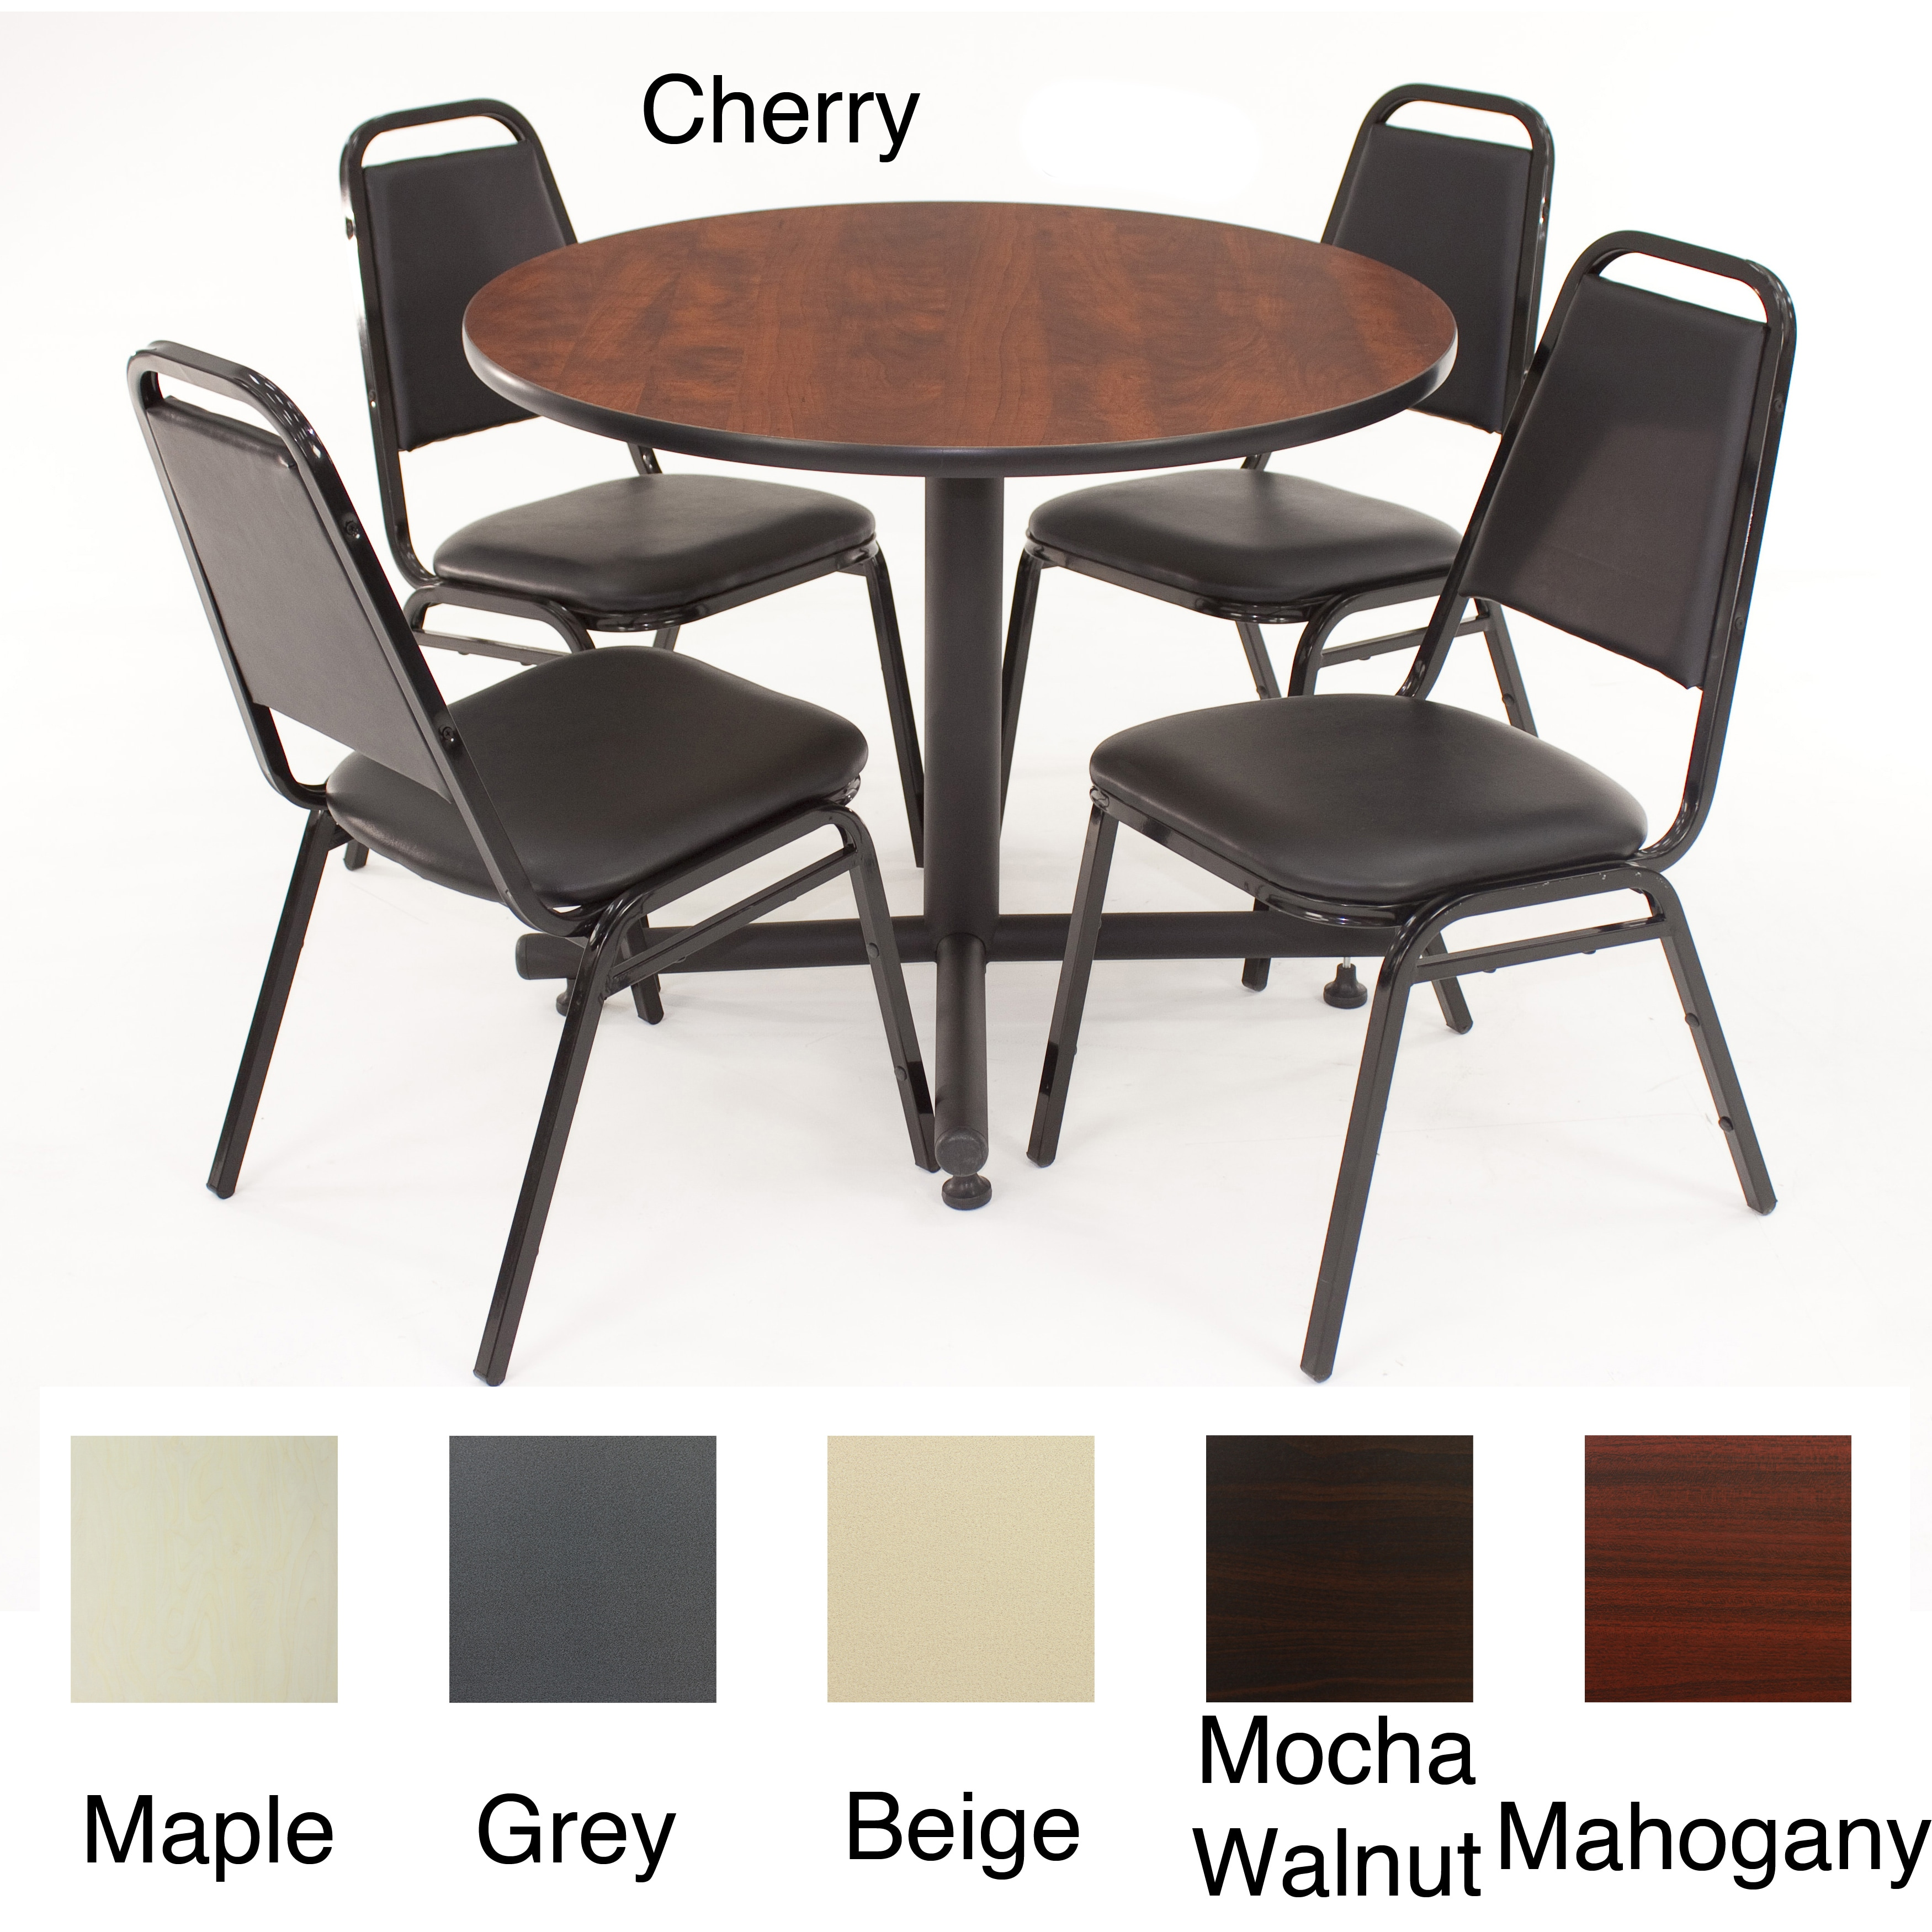 regency seating 36inch round table with 4 chairs